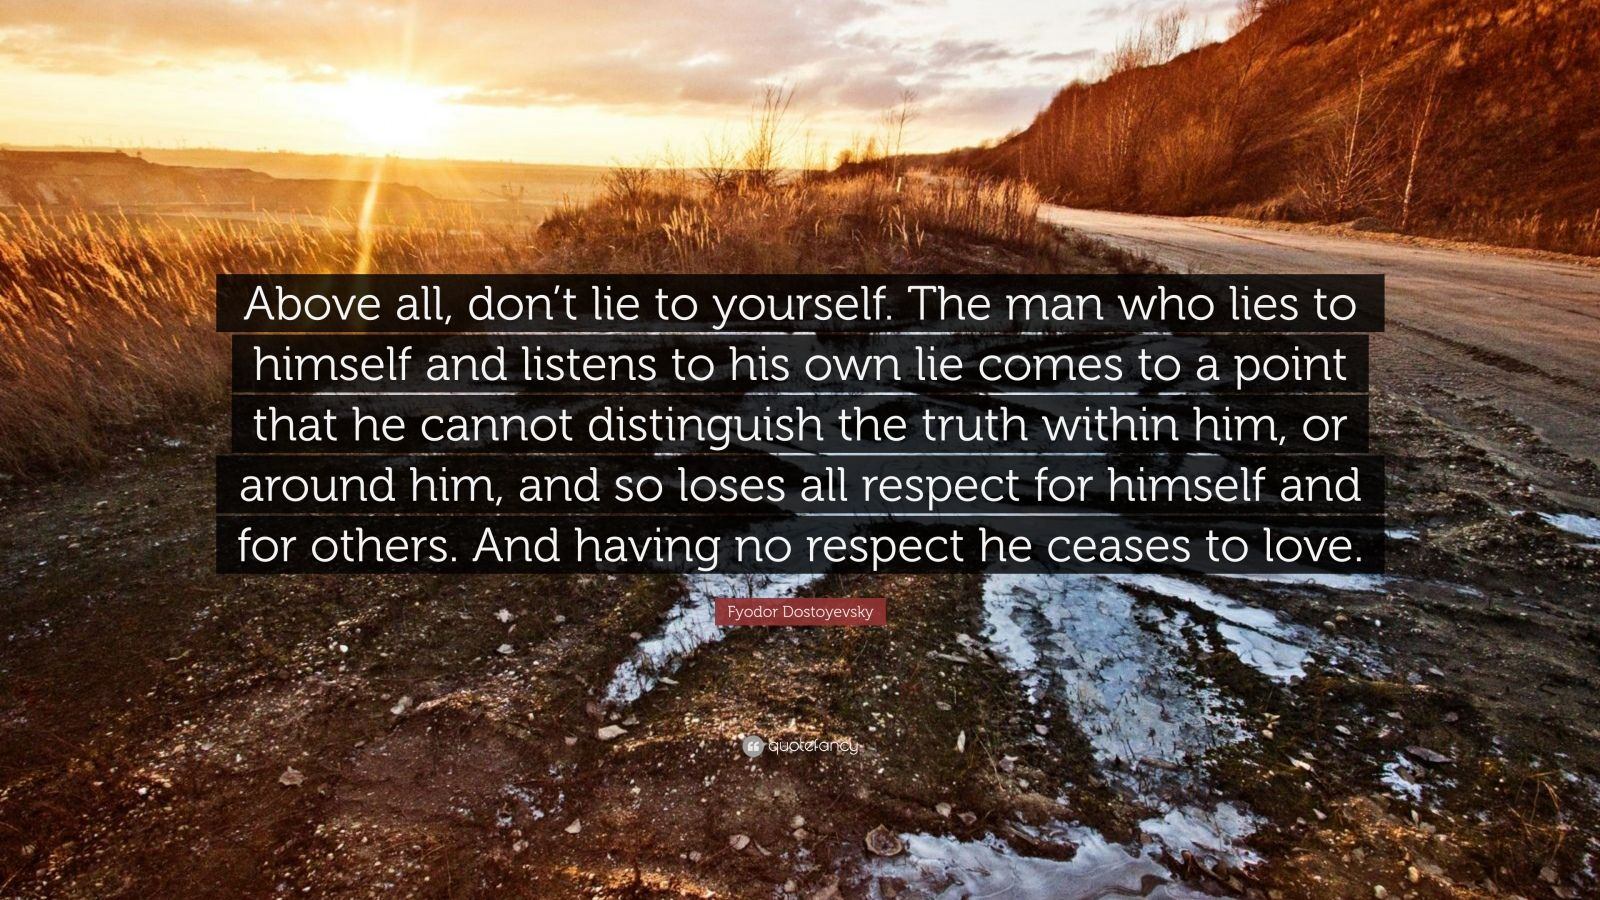 """Fyodor Dostoyevsky Quote: """"Above all, don't lie to yourself. The man who lies to himself and listens to his own lie comes to a point that he cannot distinguish the truth within him, or around him, and so loses all respect for himself and for others. And having no respect he ceases to love."""""""